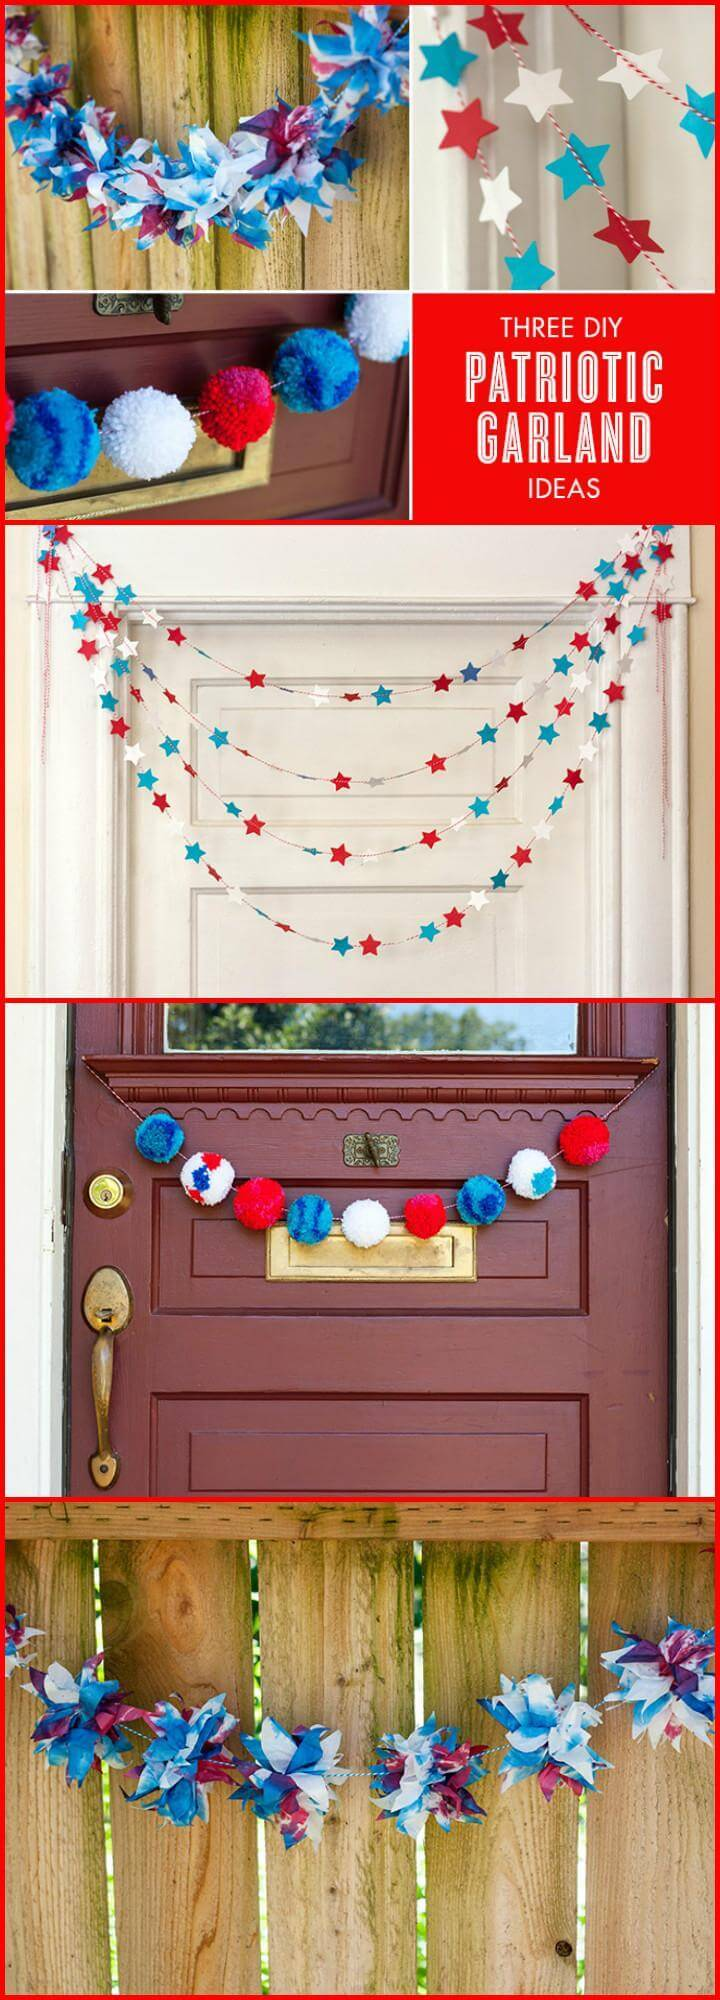 DIY 3 Patriotic Garlands